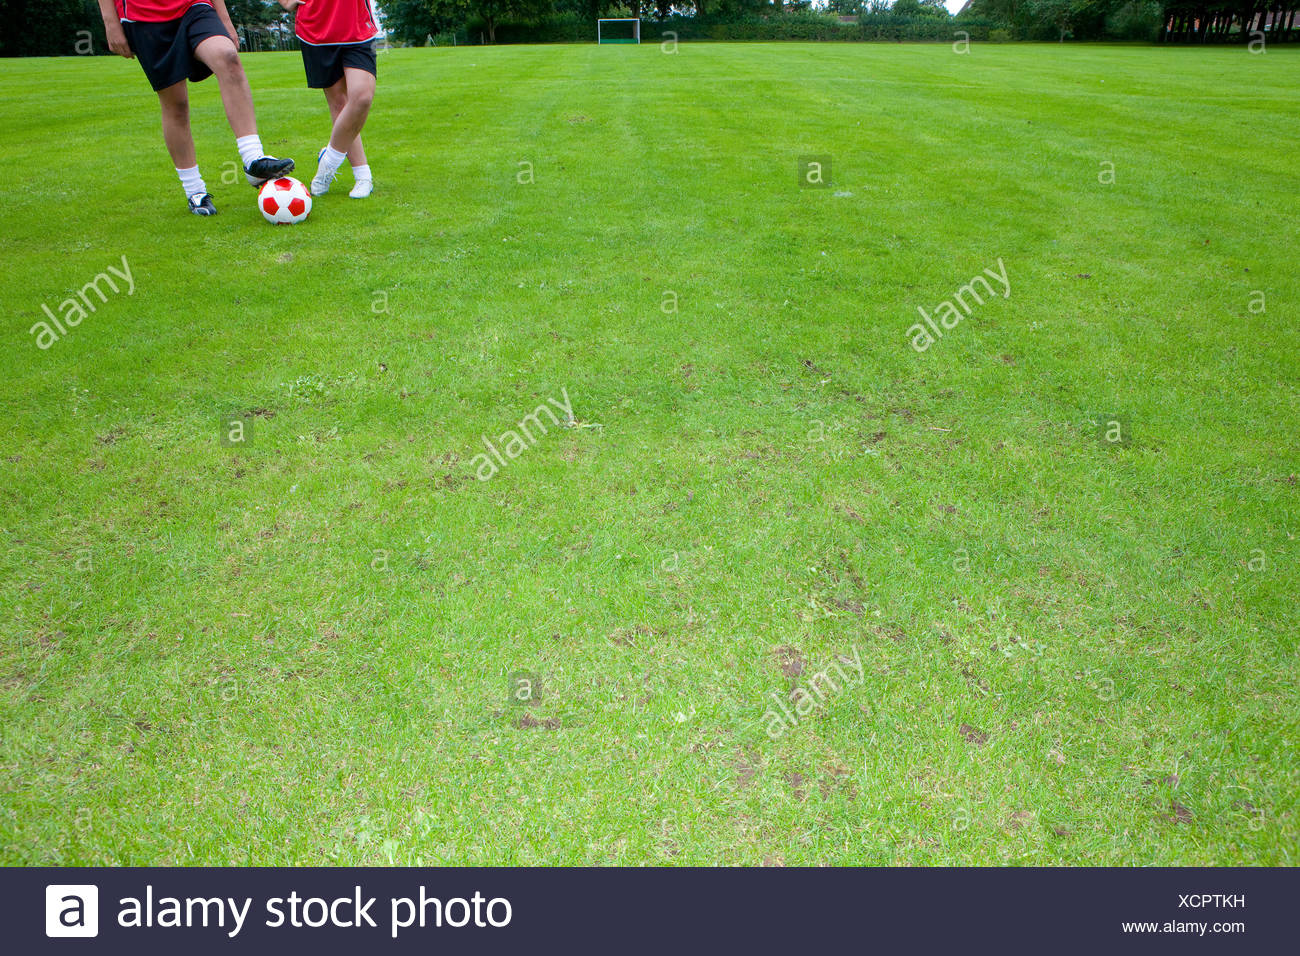 Soccer players with ball standing on field - Stock Image